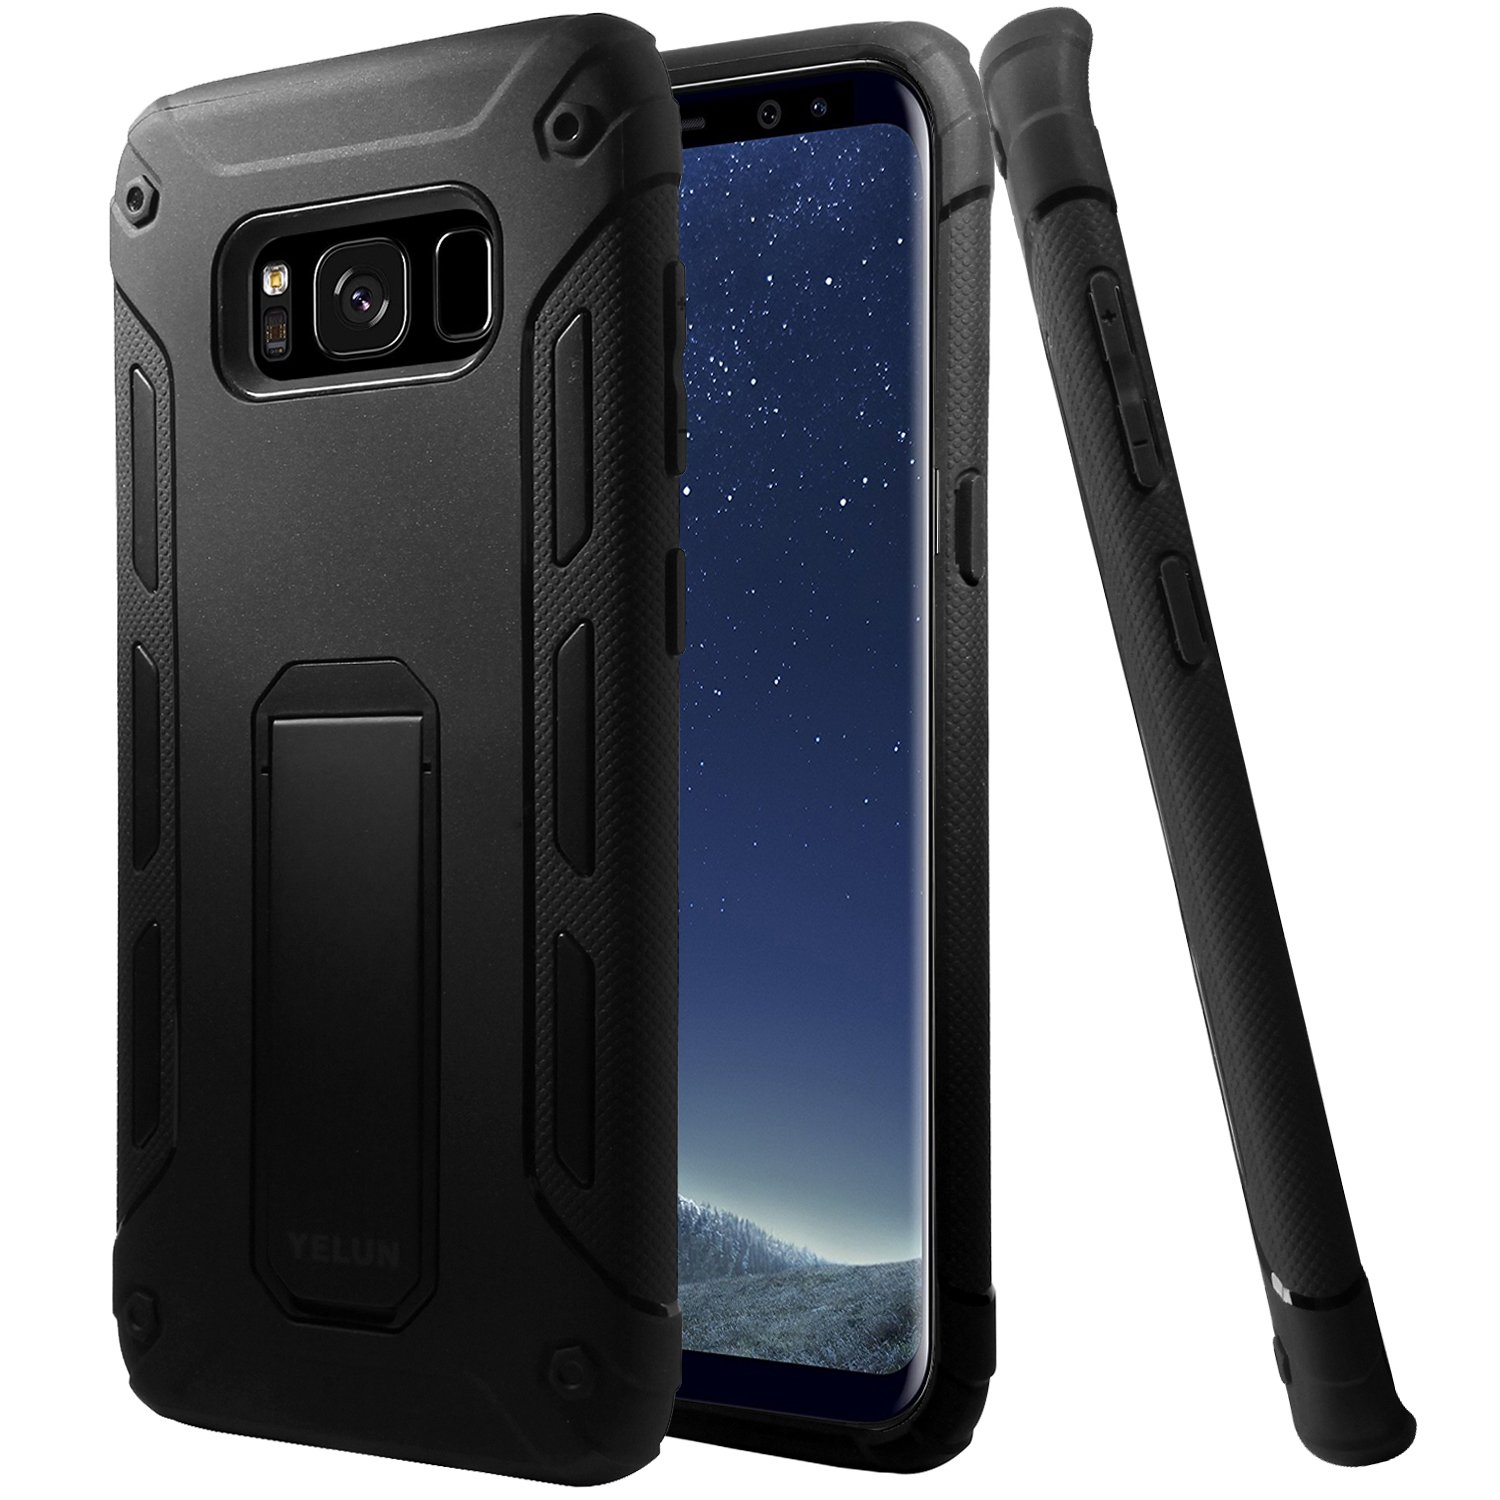 Galaxy S8 Case,YELUN[Heavy Duty]Shockproof Slim Fit Dual Layer Soft TPU & Hard PC Rugged Holster Cover Full-body Protective Bumper Case with Kickstand for Samsung Galaxy S8 (Black)